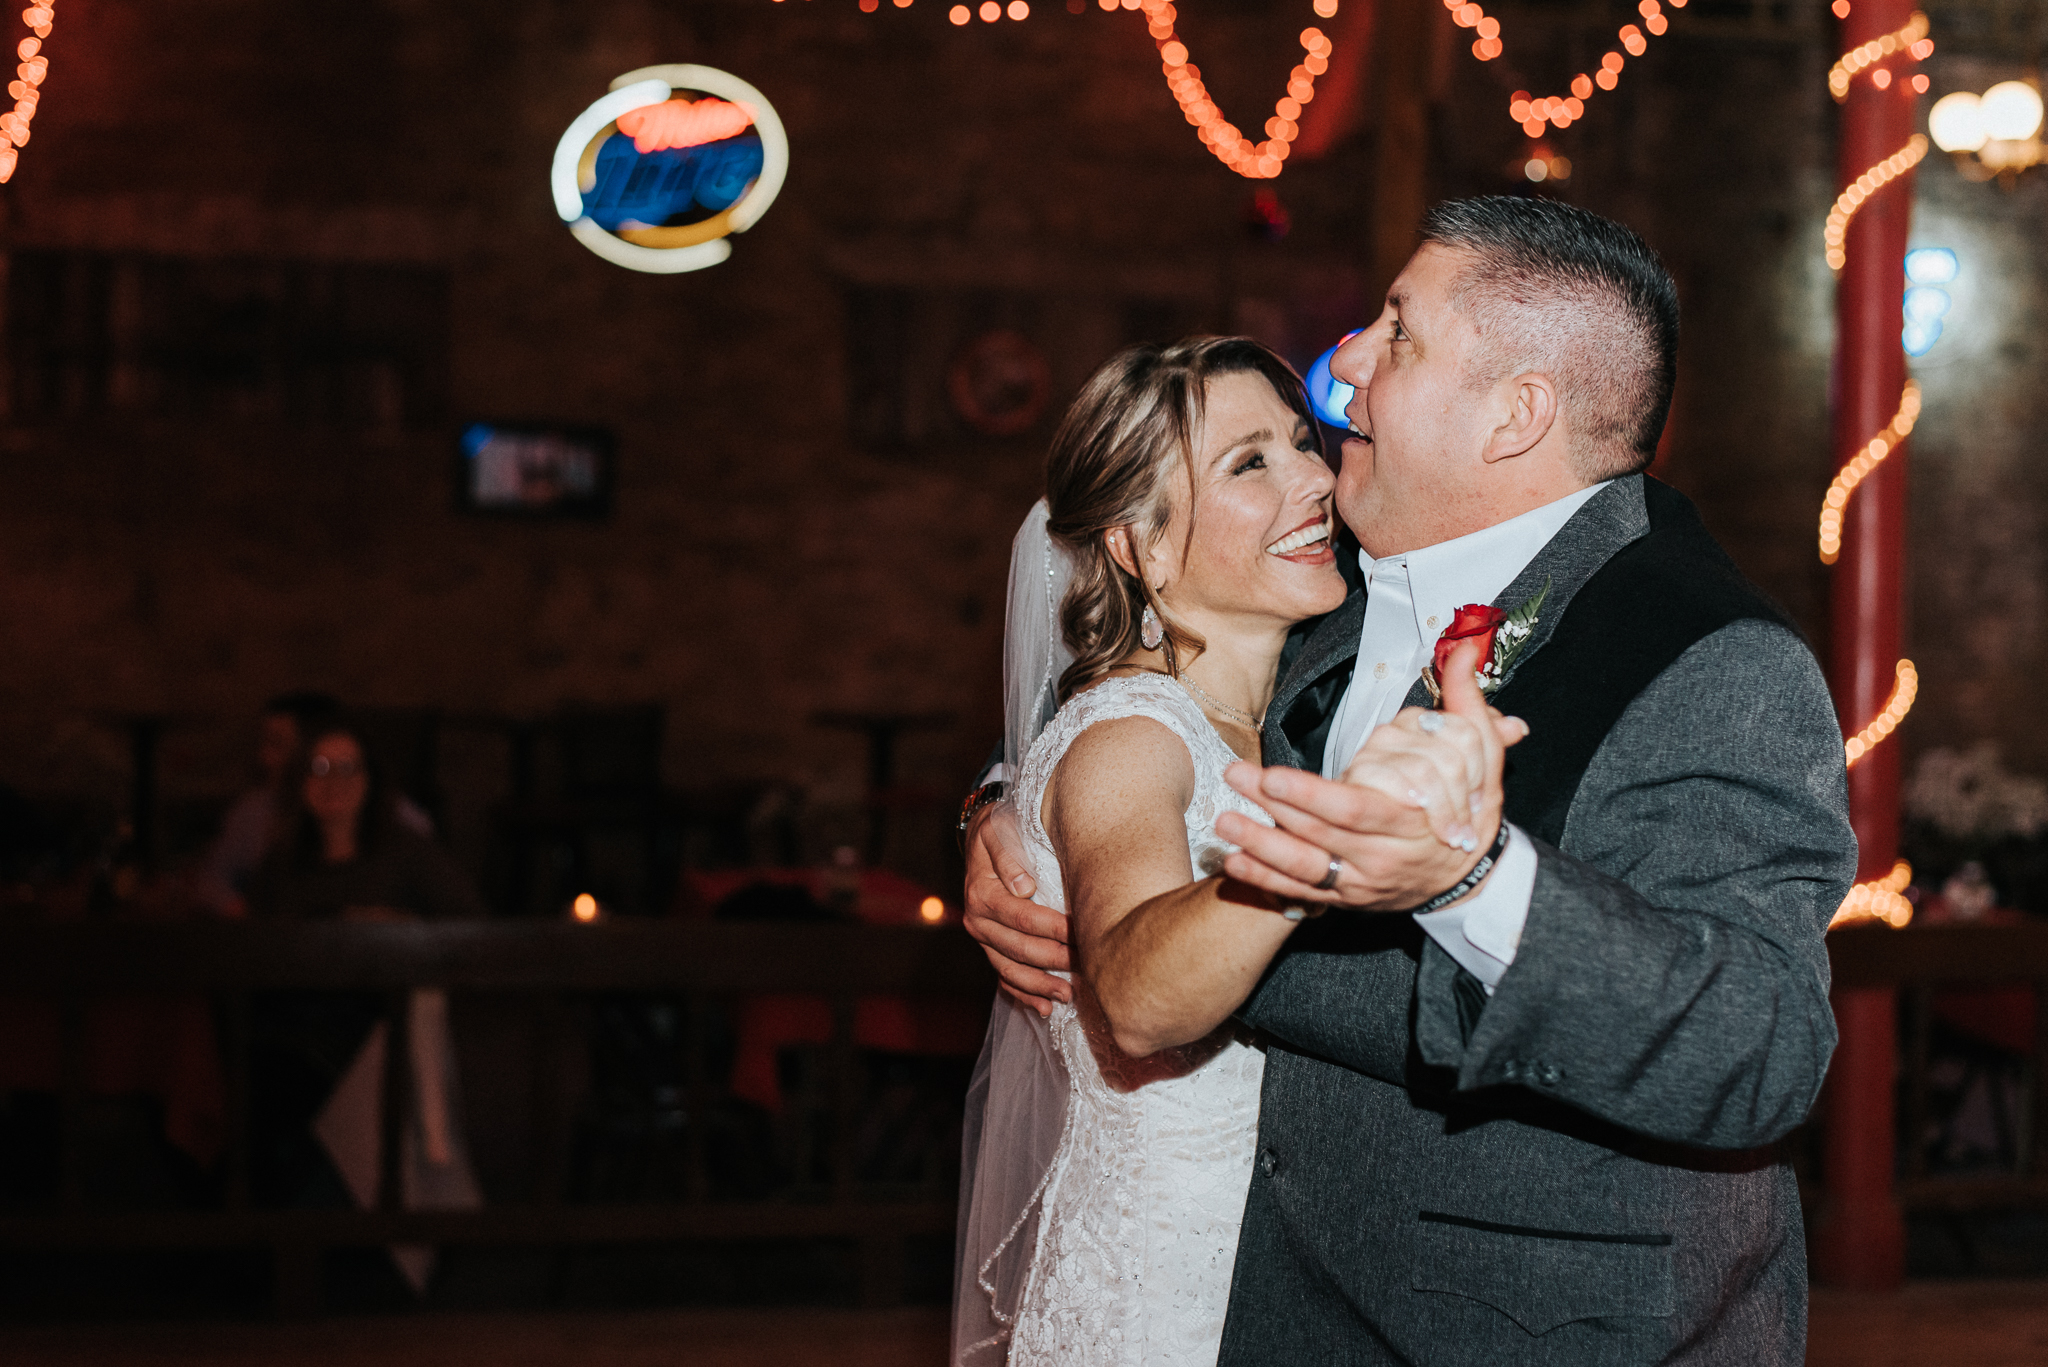 Wedding Photography_Round Rock Texas _Austin Texas_Pflugerville Texas_Coupland Dance Hall and Inn_Emily Ingalls Photography_Coupland Texas-4.jpg